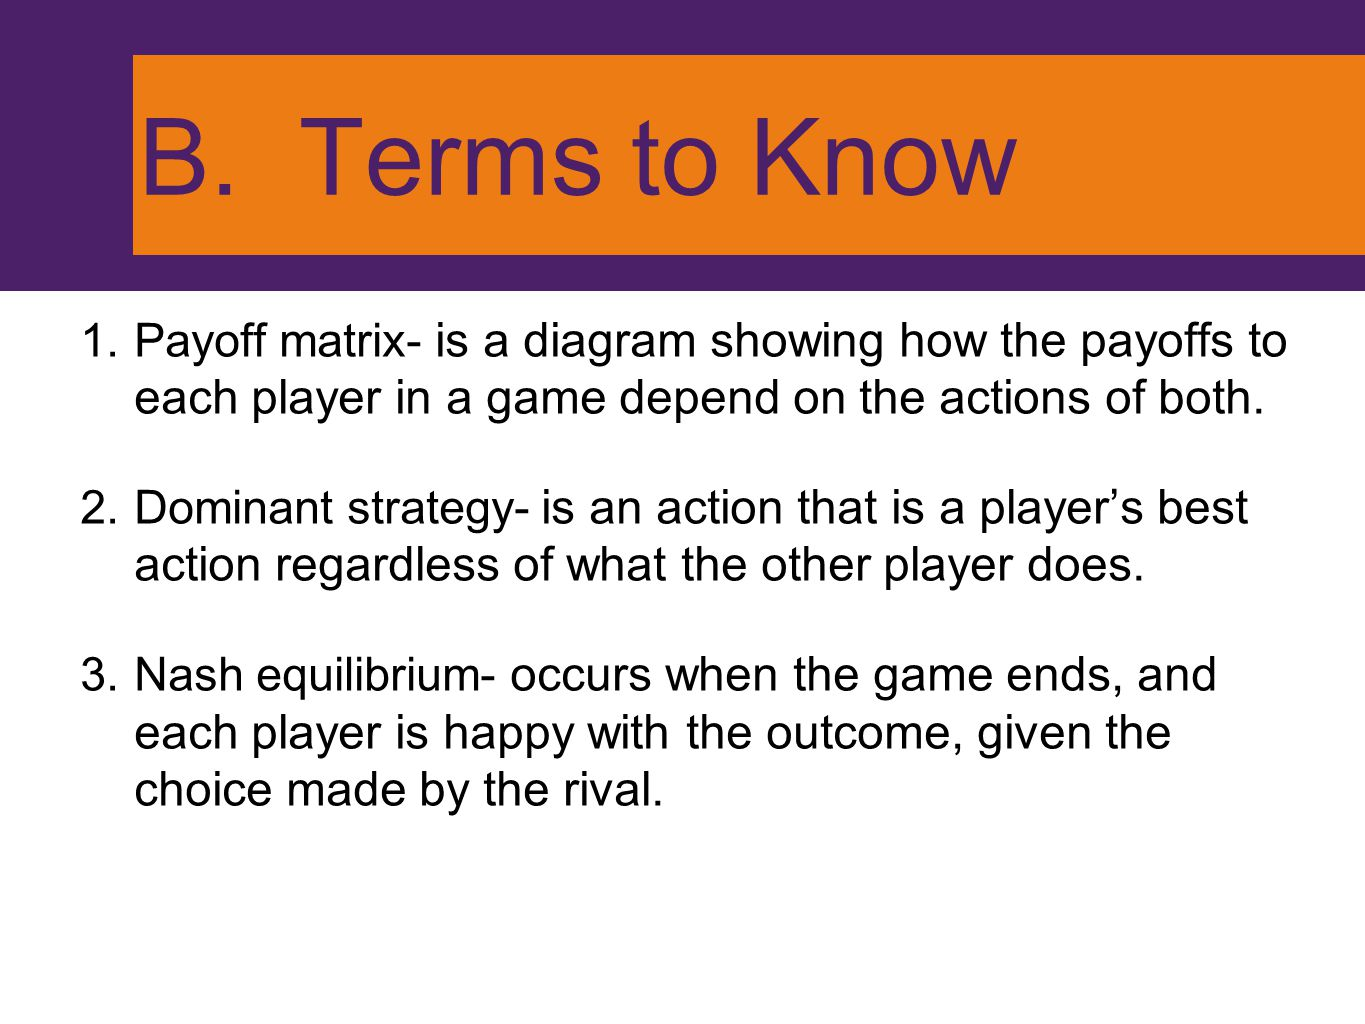 B. Terms to Know Payoff matrix- is a diagram showing how the payoffs to each player in a game depend on the actions of both.